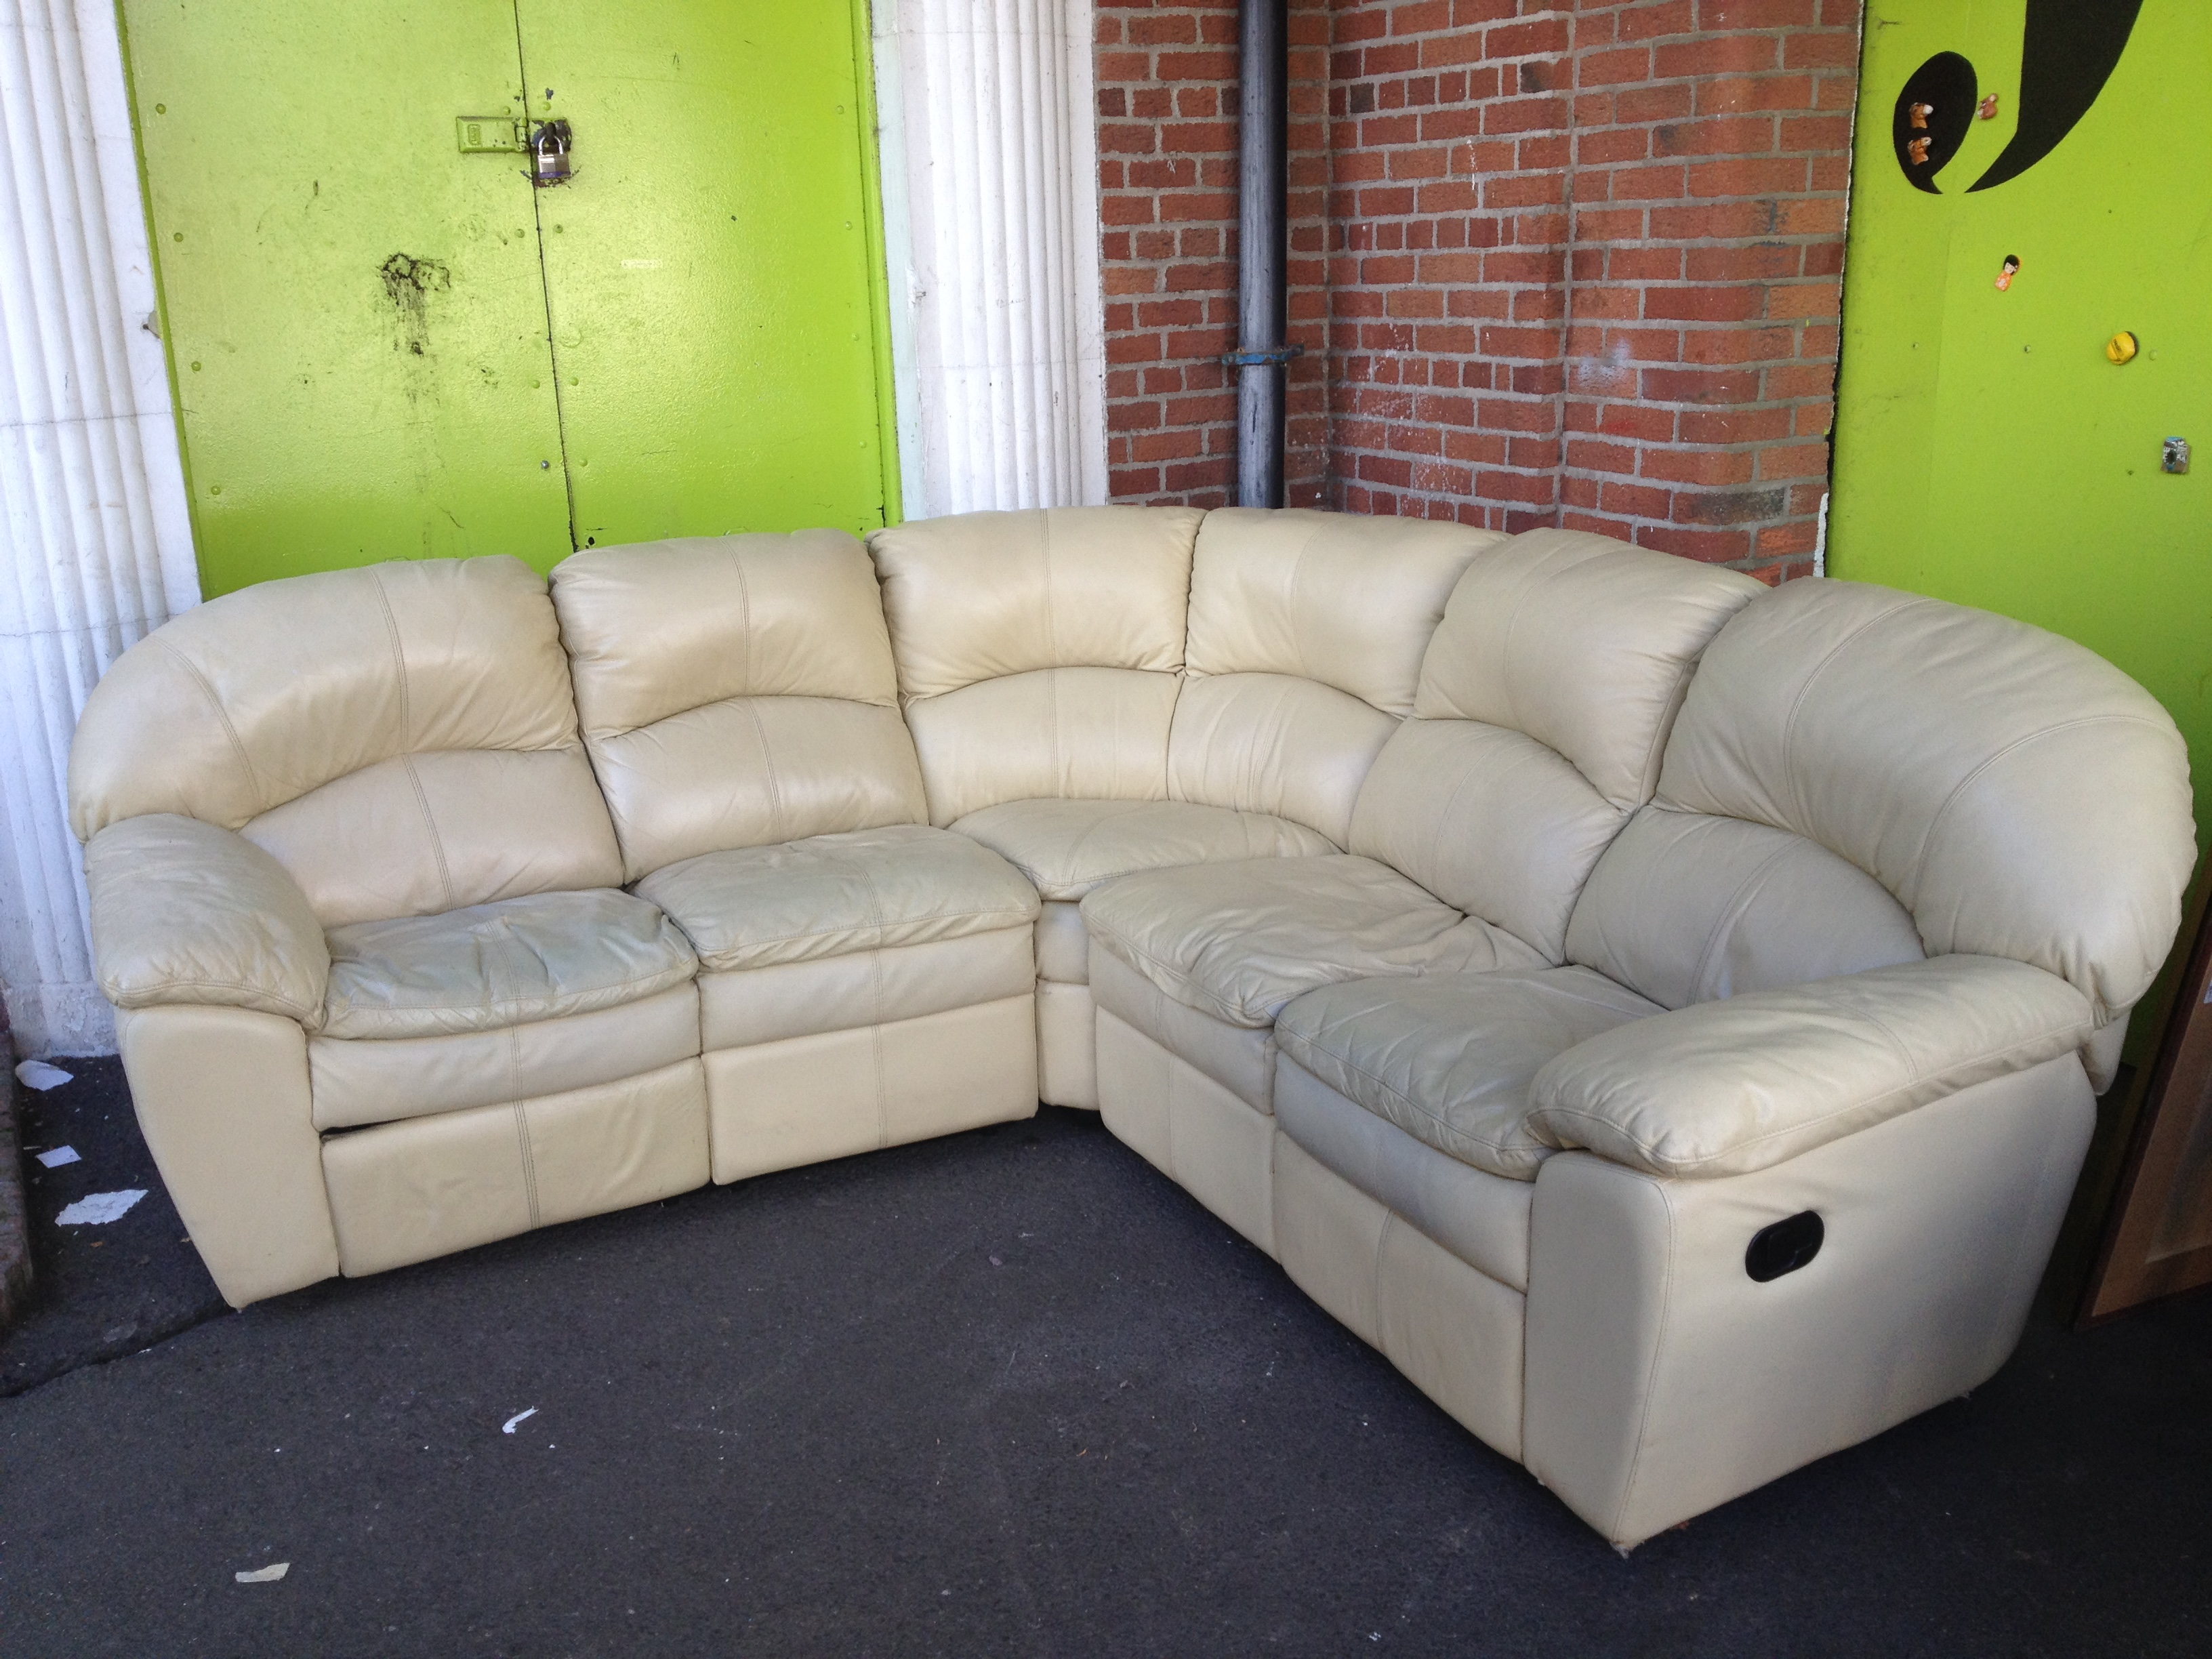 Genial Buy 2nd Hand Couches In Dublin Market